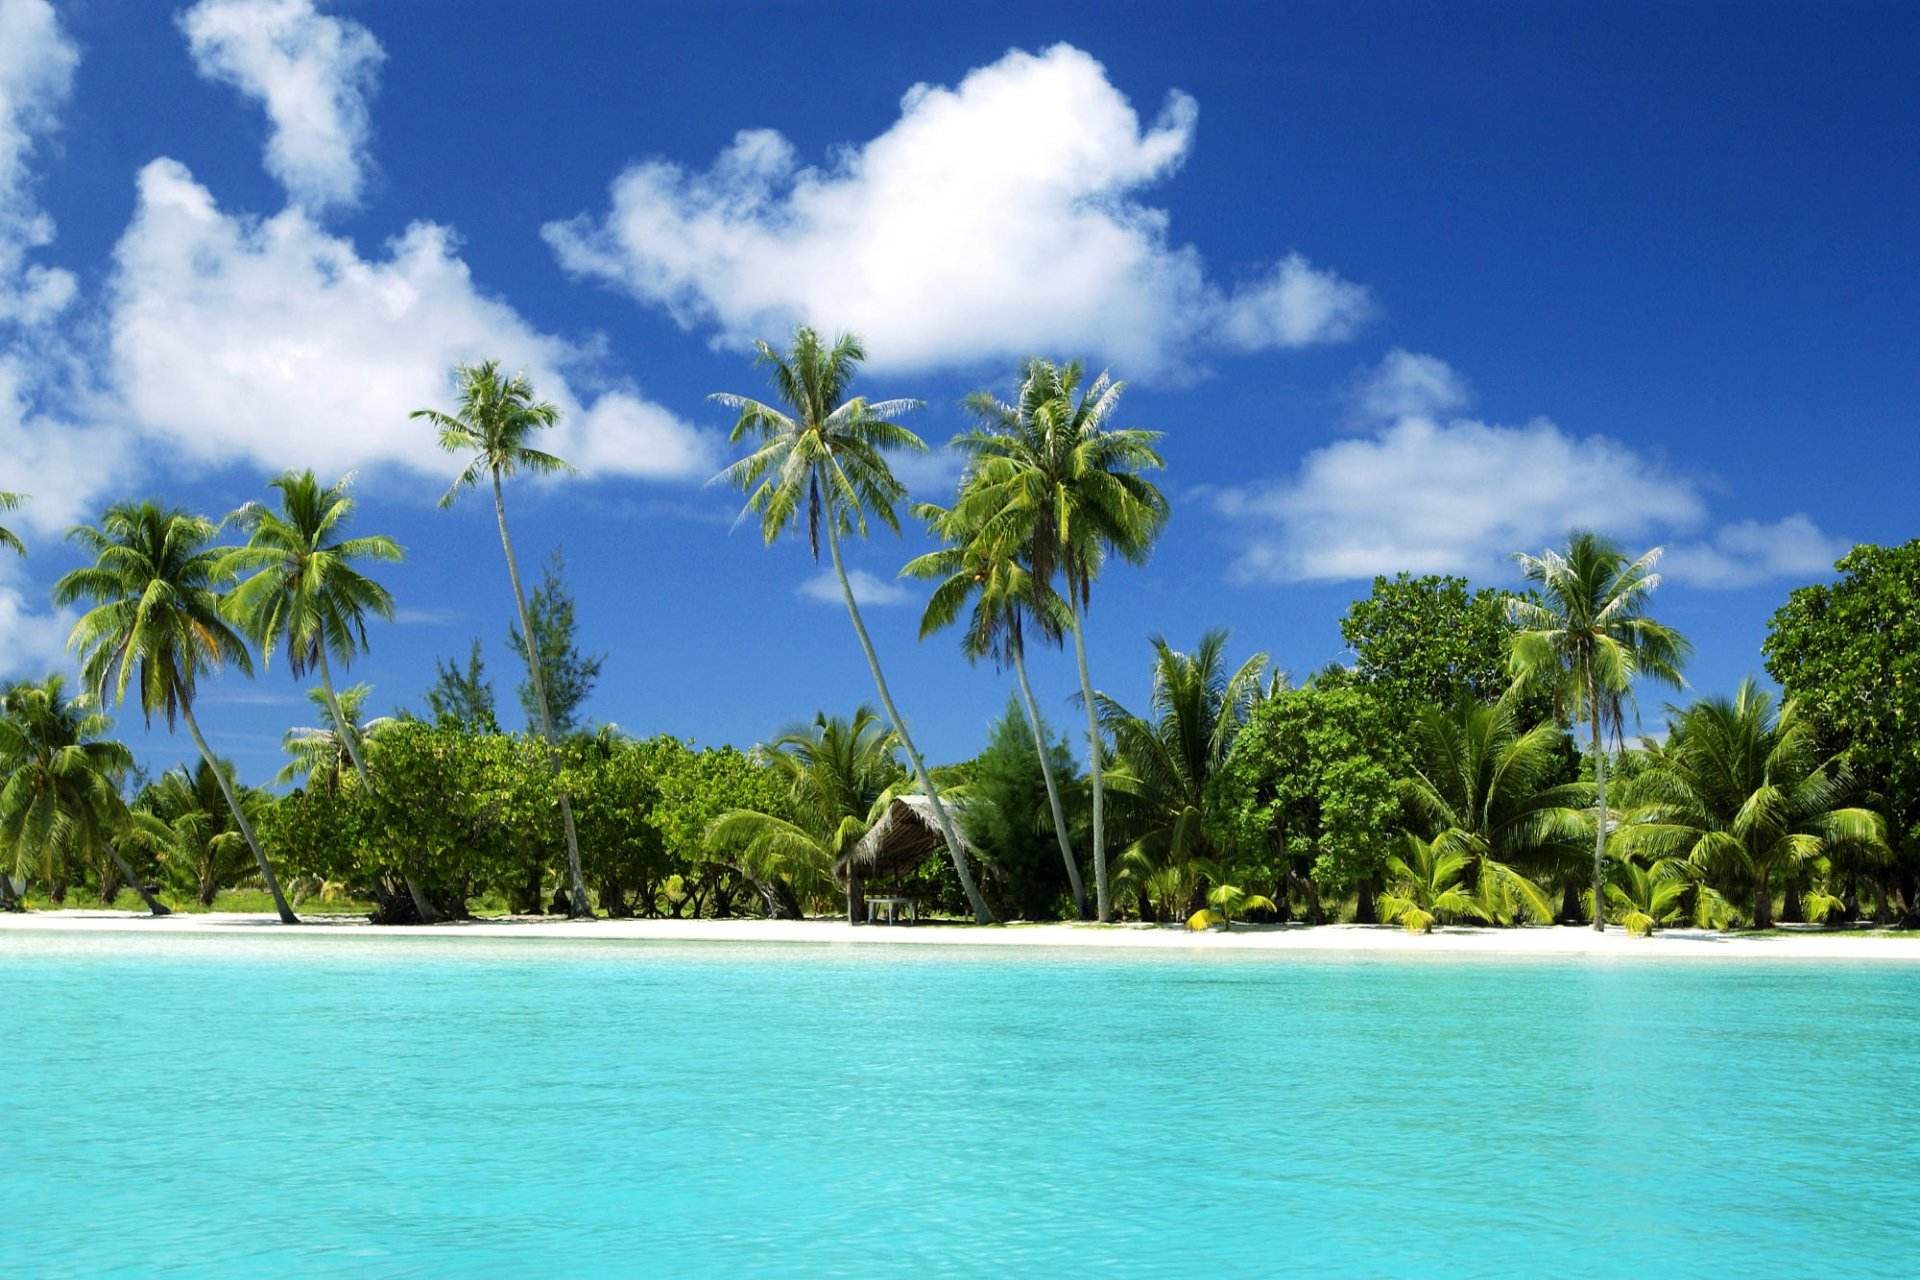 Earth - Beach  Tree Palm Tree Hut Sea Cloud Wallpaper